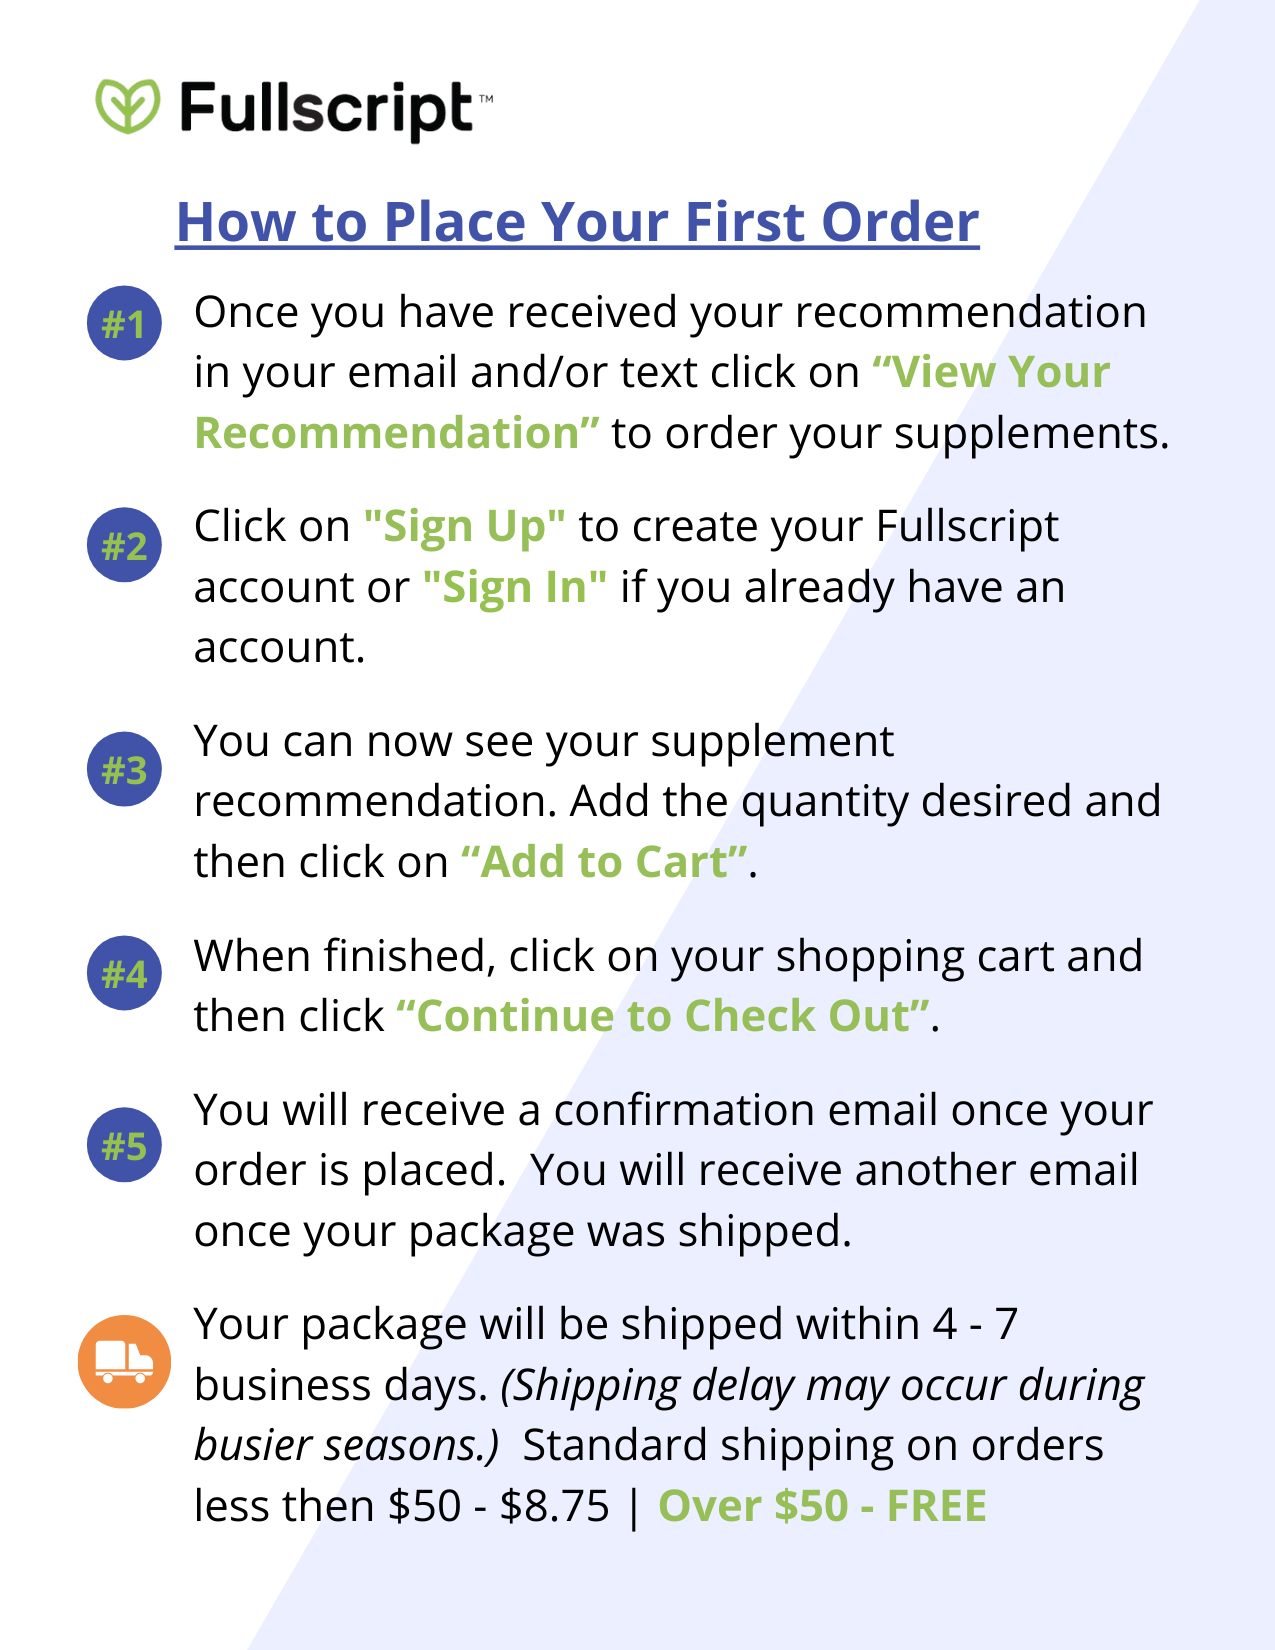 How to place your first order